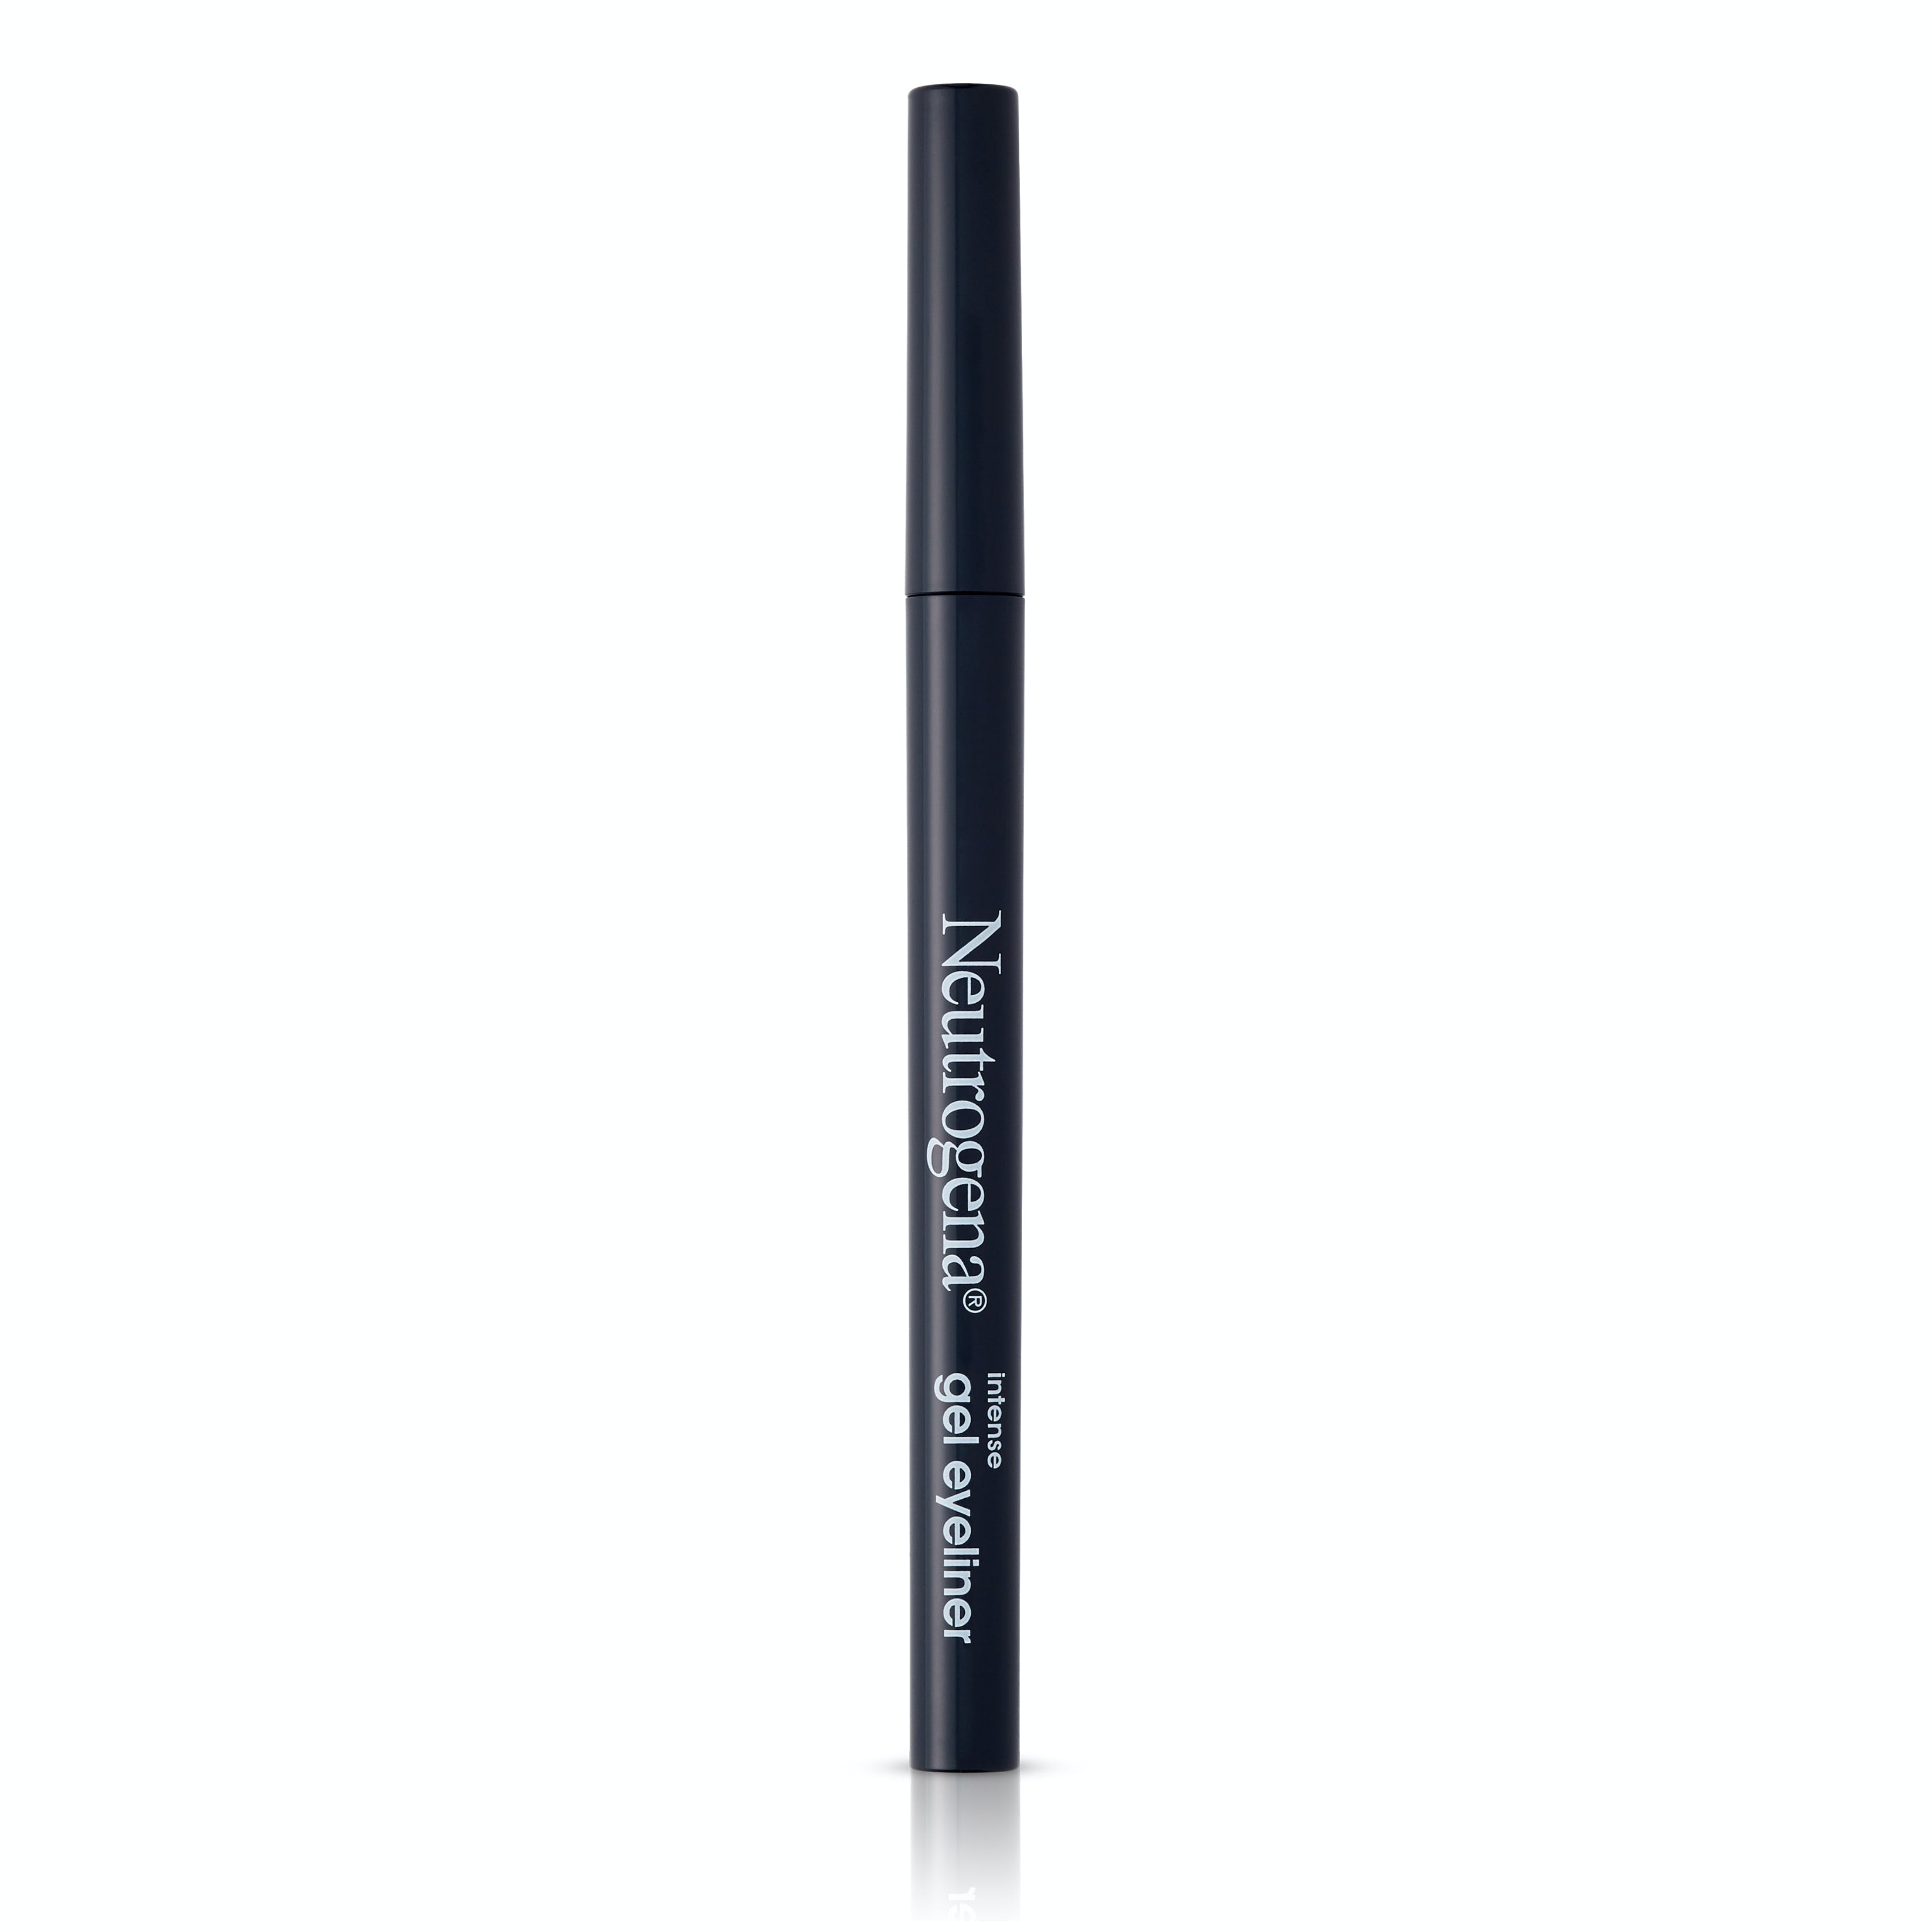 Beauty Essentials Devoted Waterproof Quick Dry Black Eyeliner Pencil Long Lasting Without Fading Makeup Beauty Professional Eye Liner Cosmetic Tool